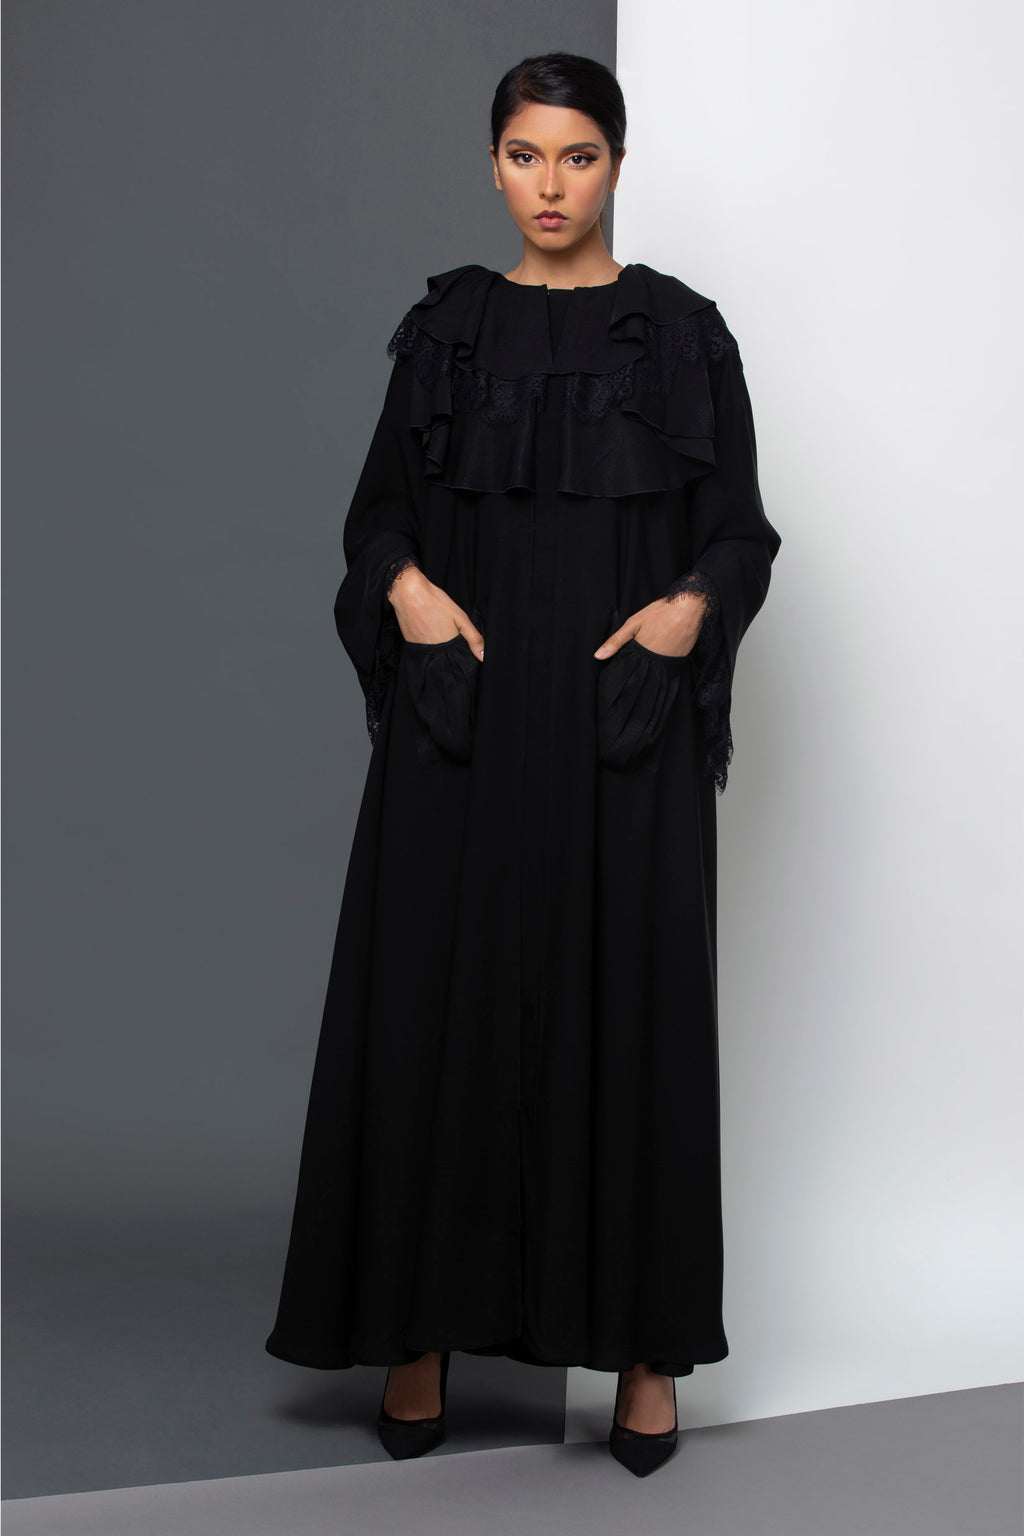 BLACK RUFFLE FRENCH LACE SALOAN ABAYA.